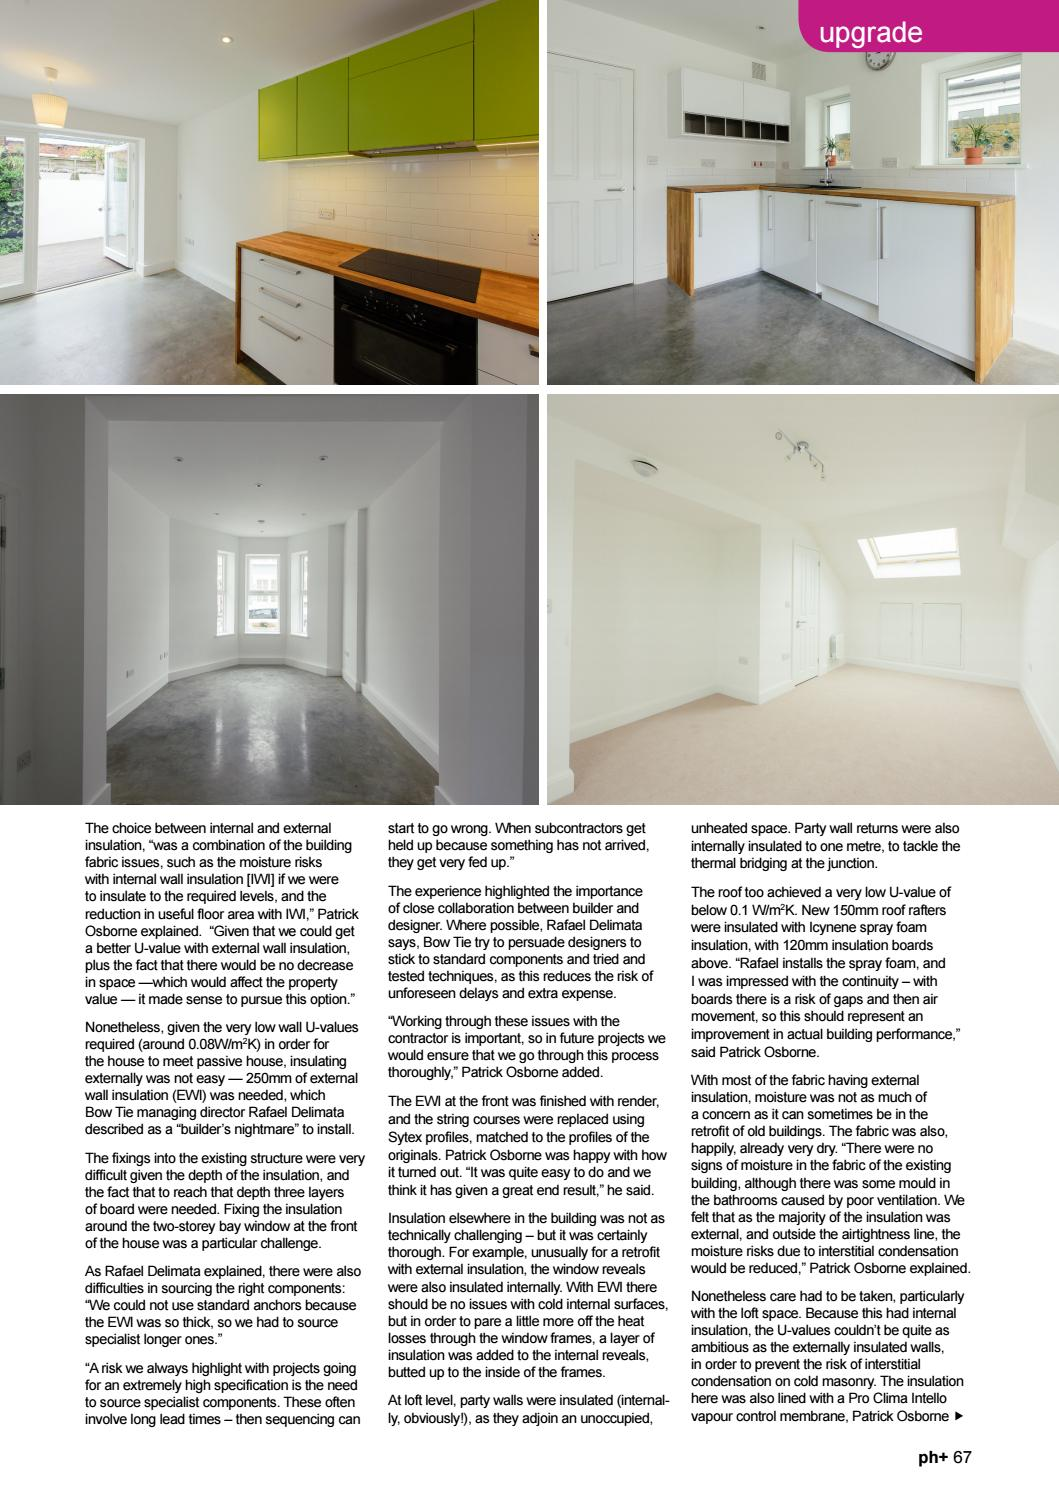 Passive house plus issue 17 (uk edition) by Passive House Plus